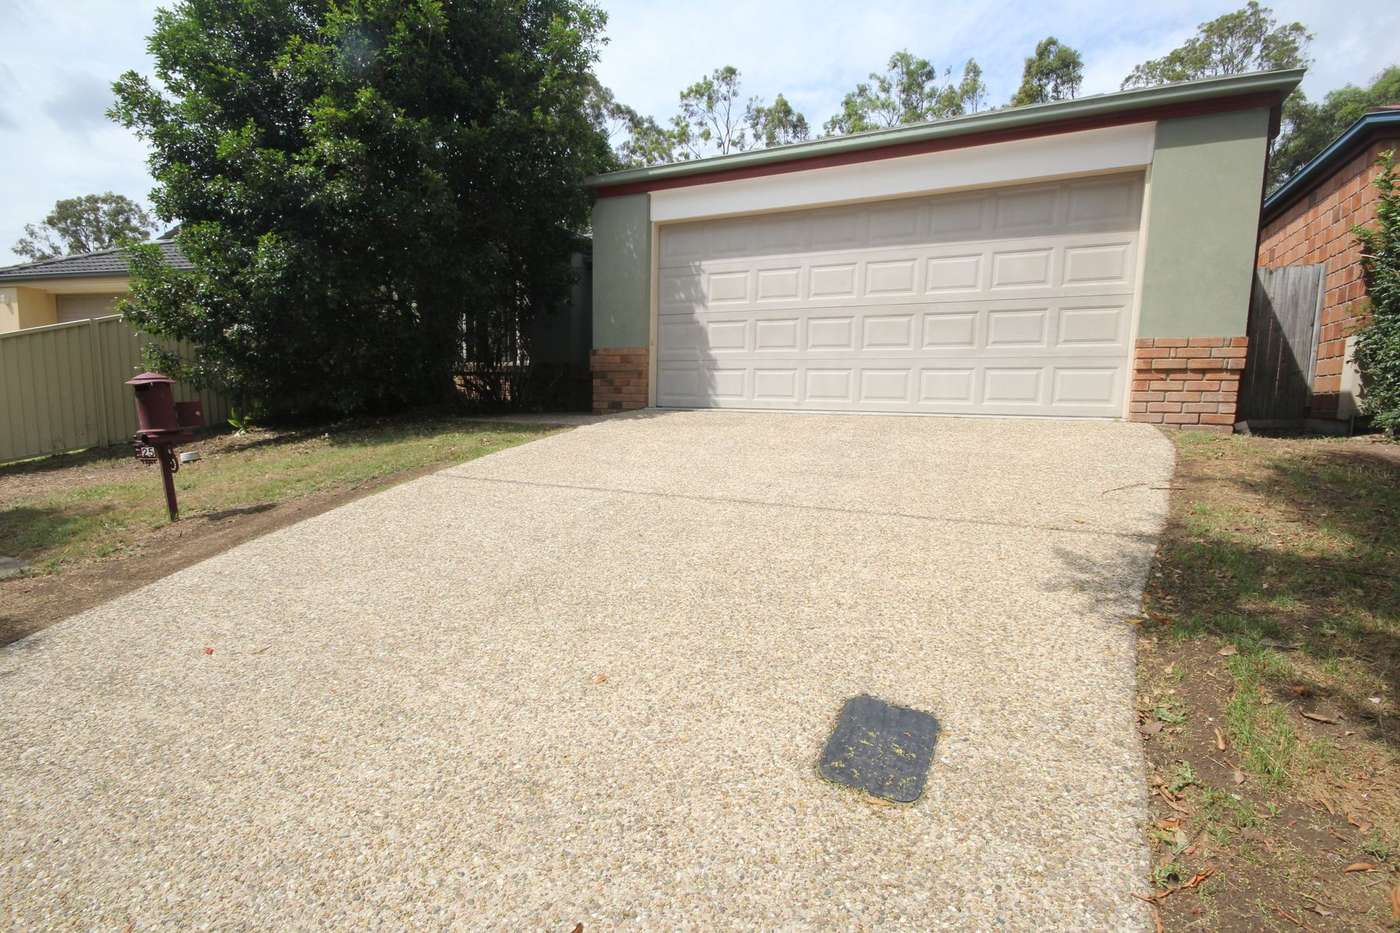 Main view of Homely house listing, 25 Starr Street, Forest Lake, QLD 4078